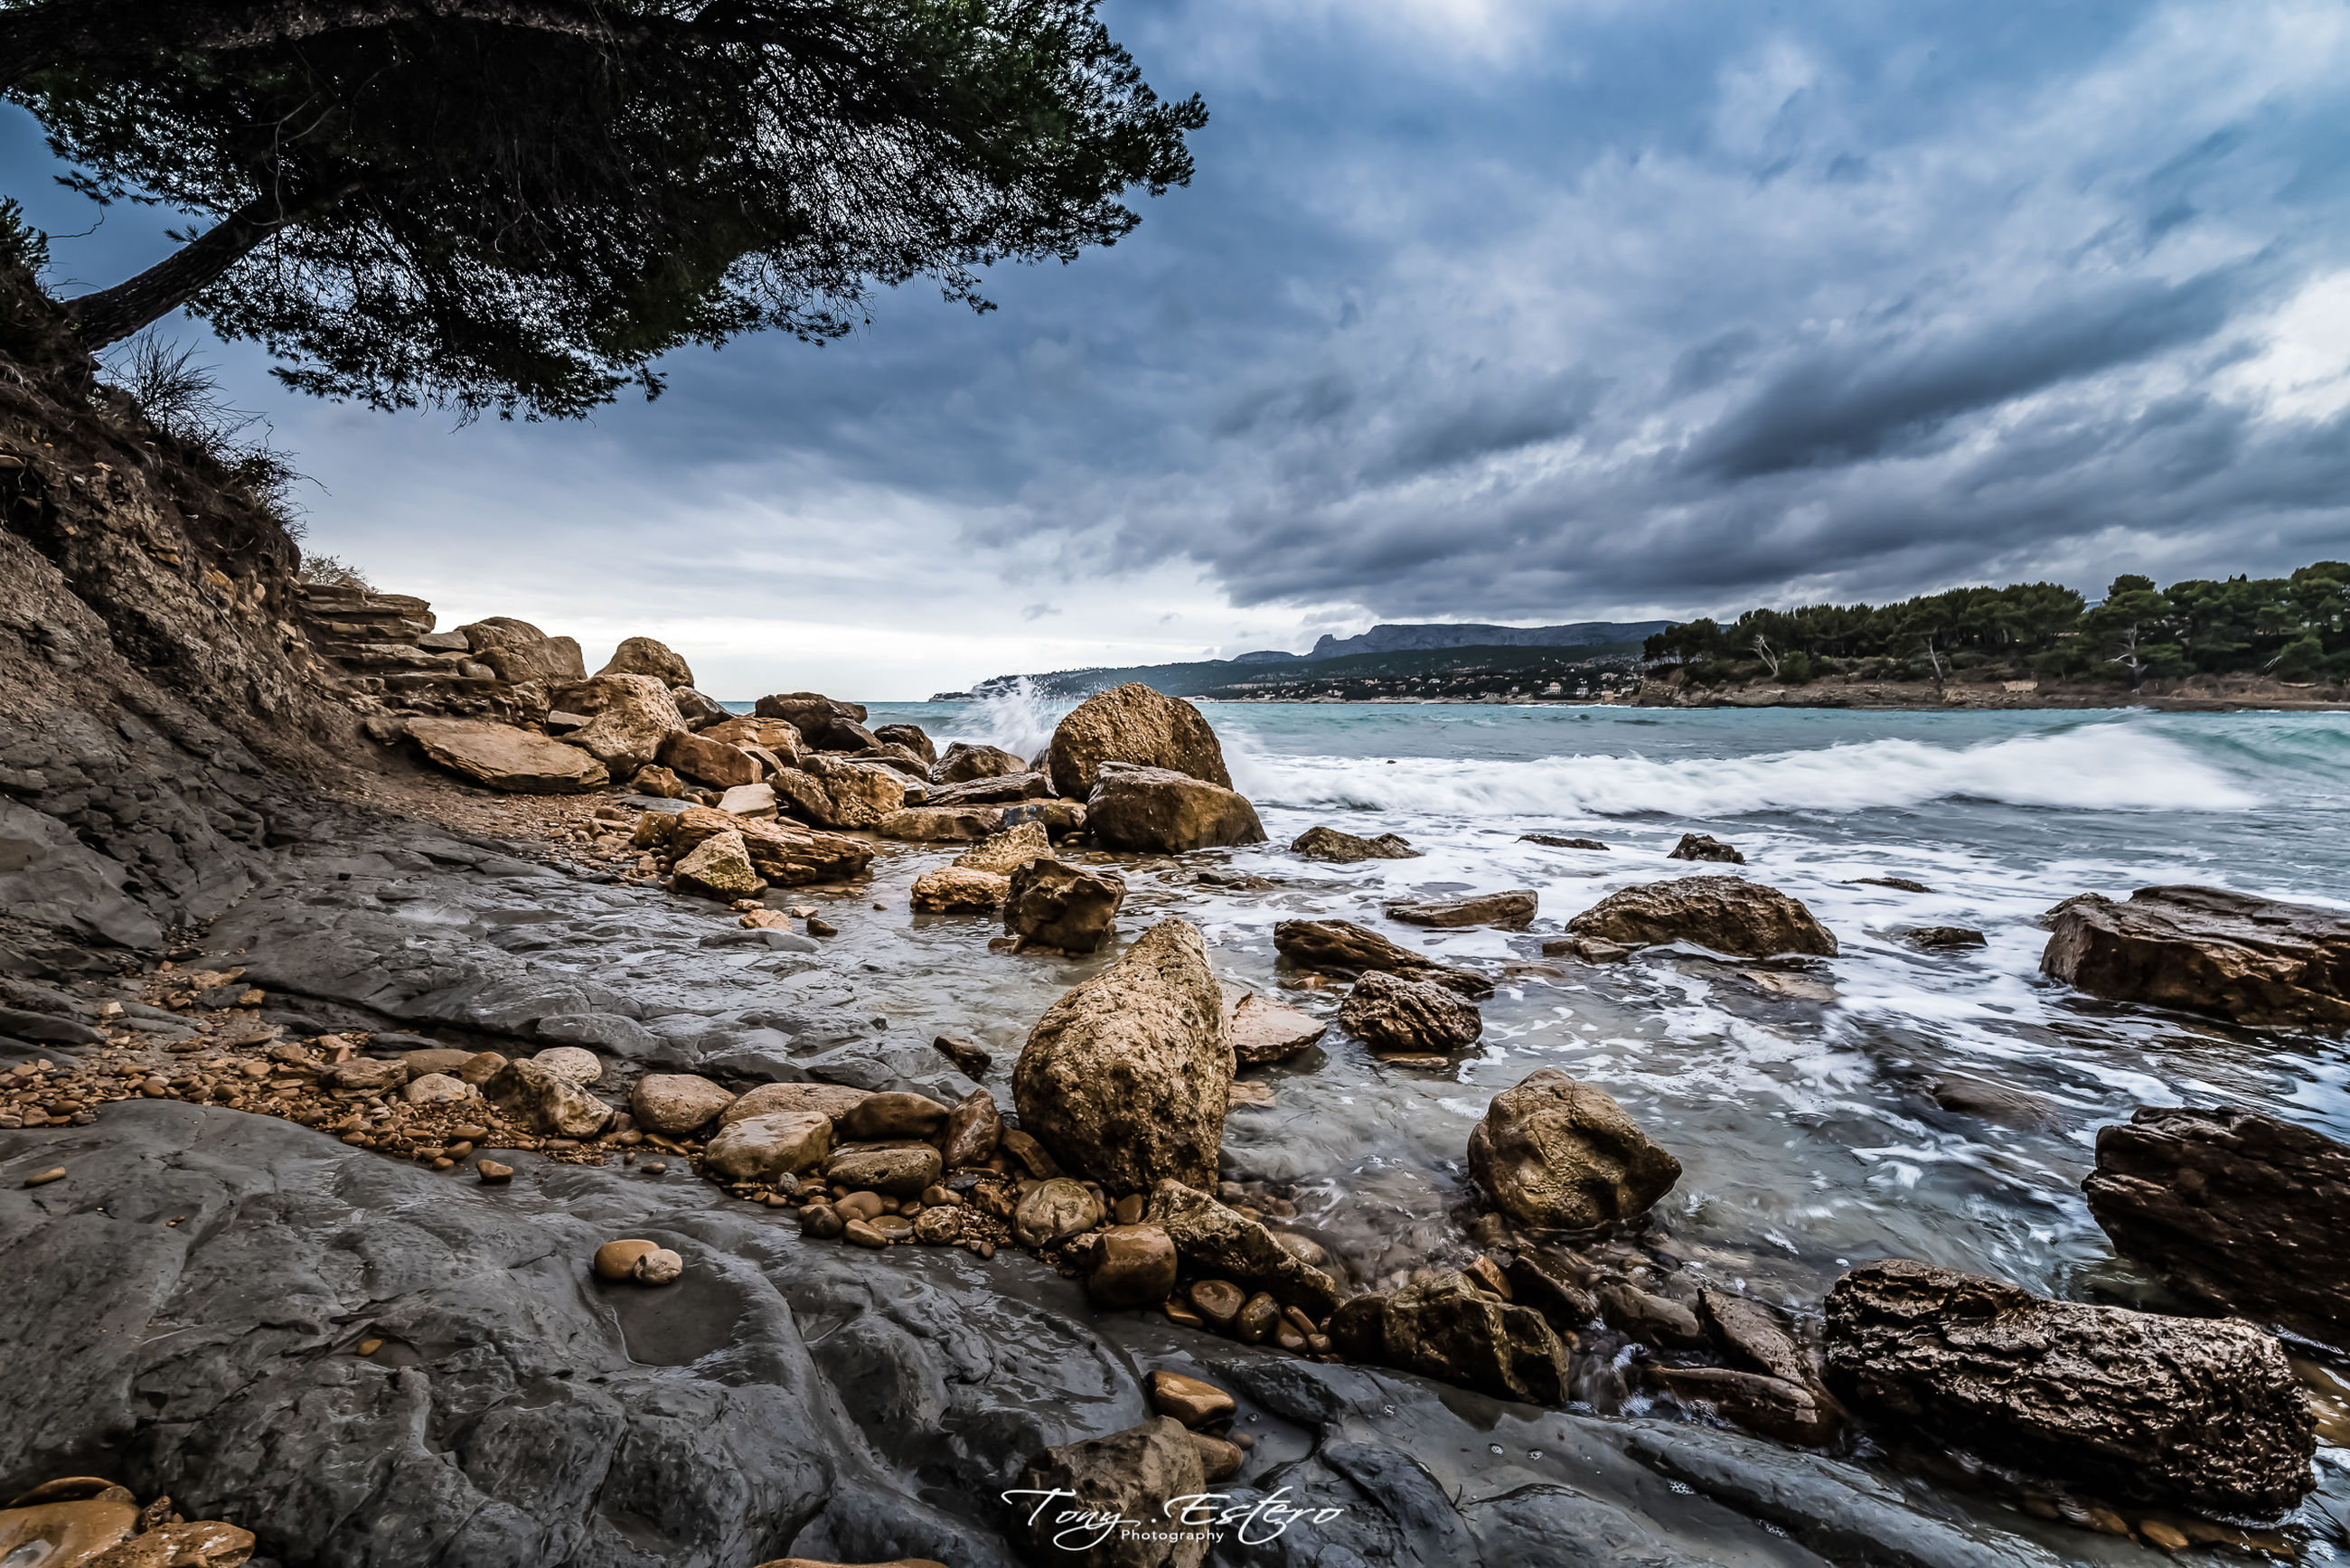 sky, cloud - sky, rock, water, solid, rock - object, beauty in nature, scenics - nature, sea, tranquil scene, tranquility, no people, nature, beach, land, day, non-urban scene, tree, motion, outdoors, rocky coastline